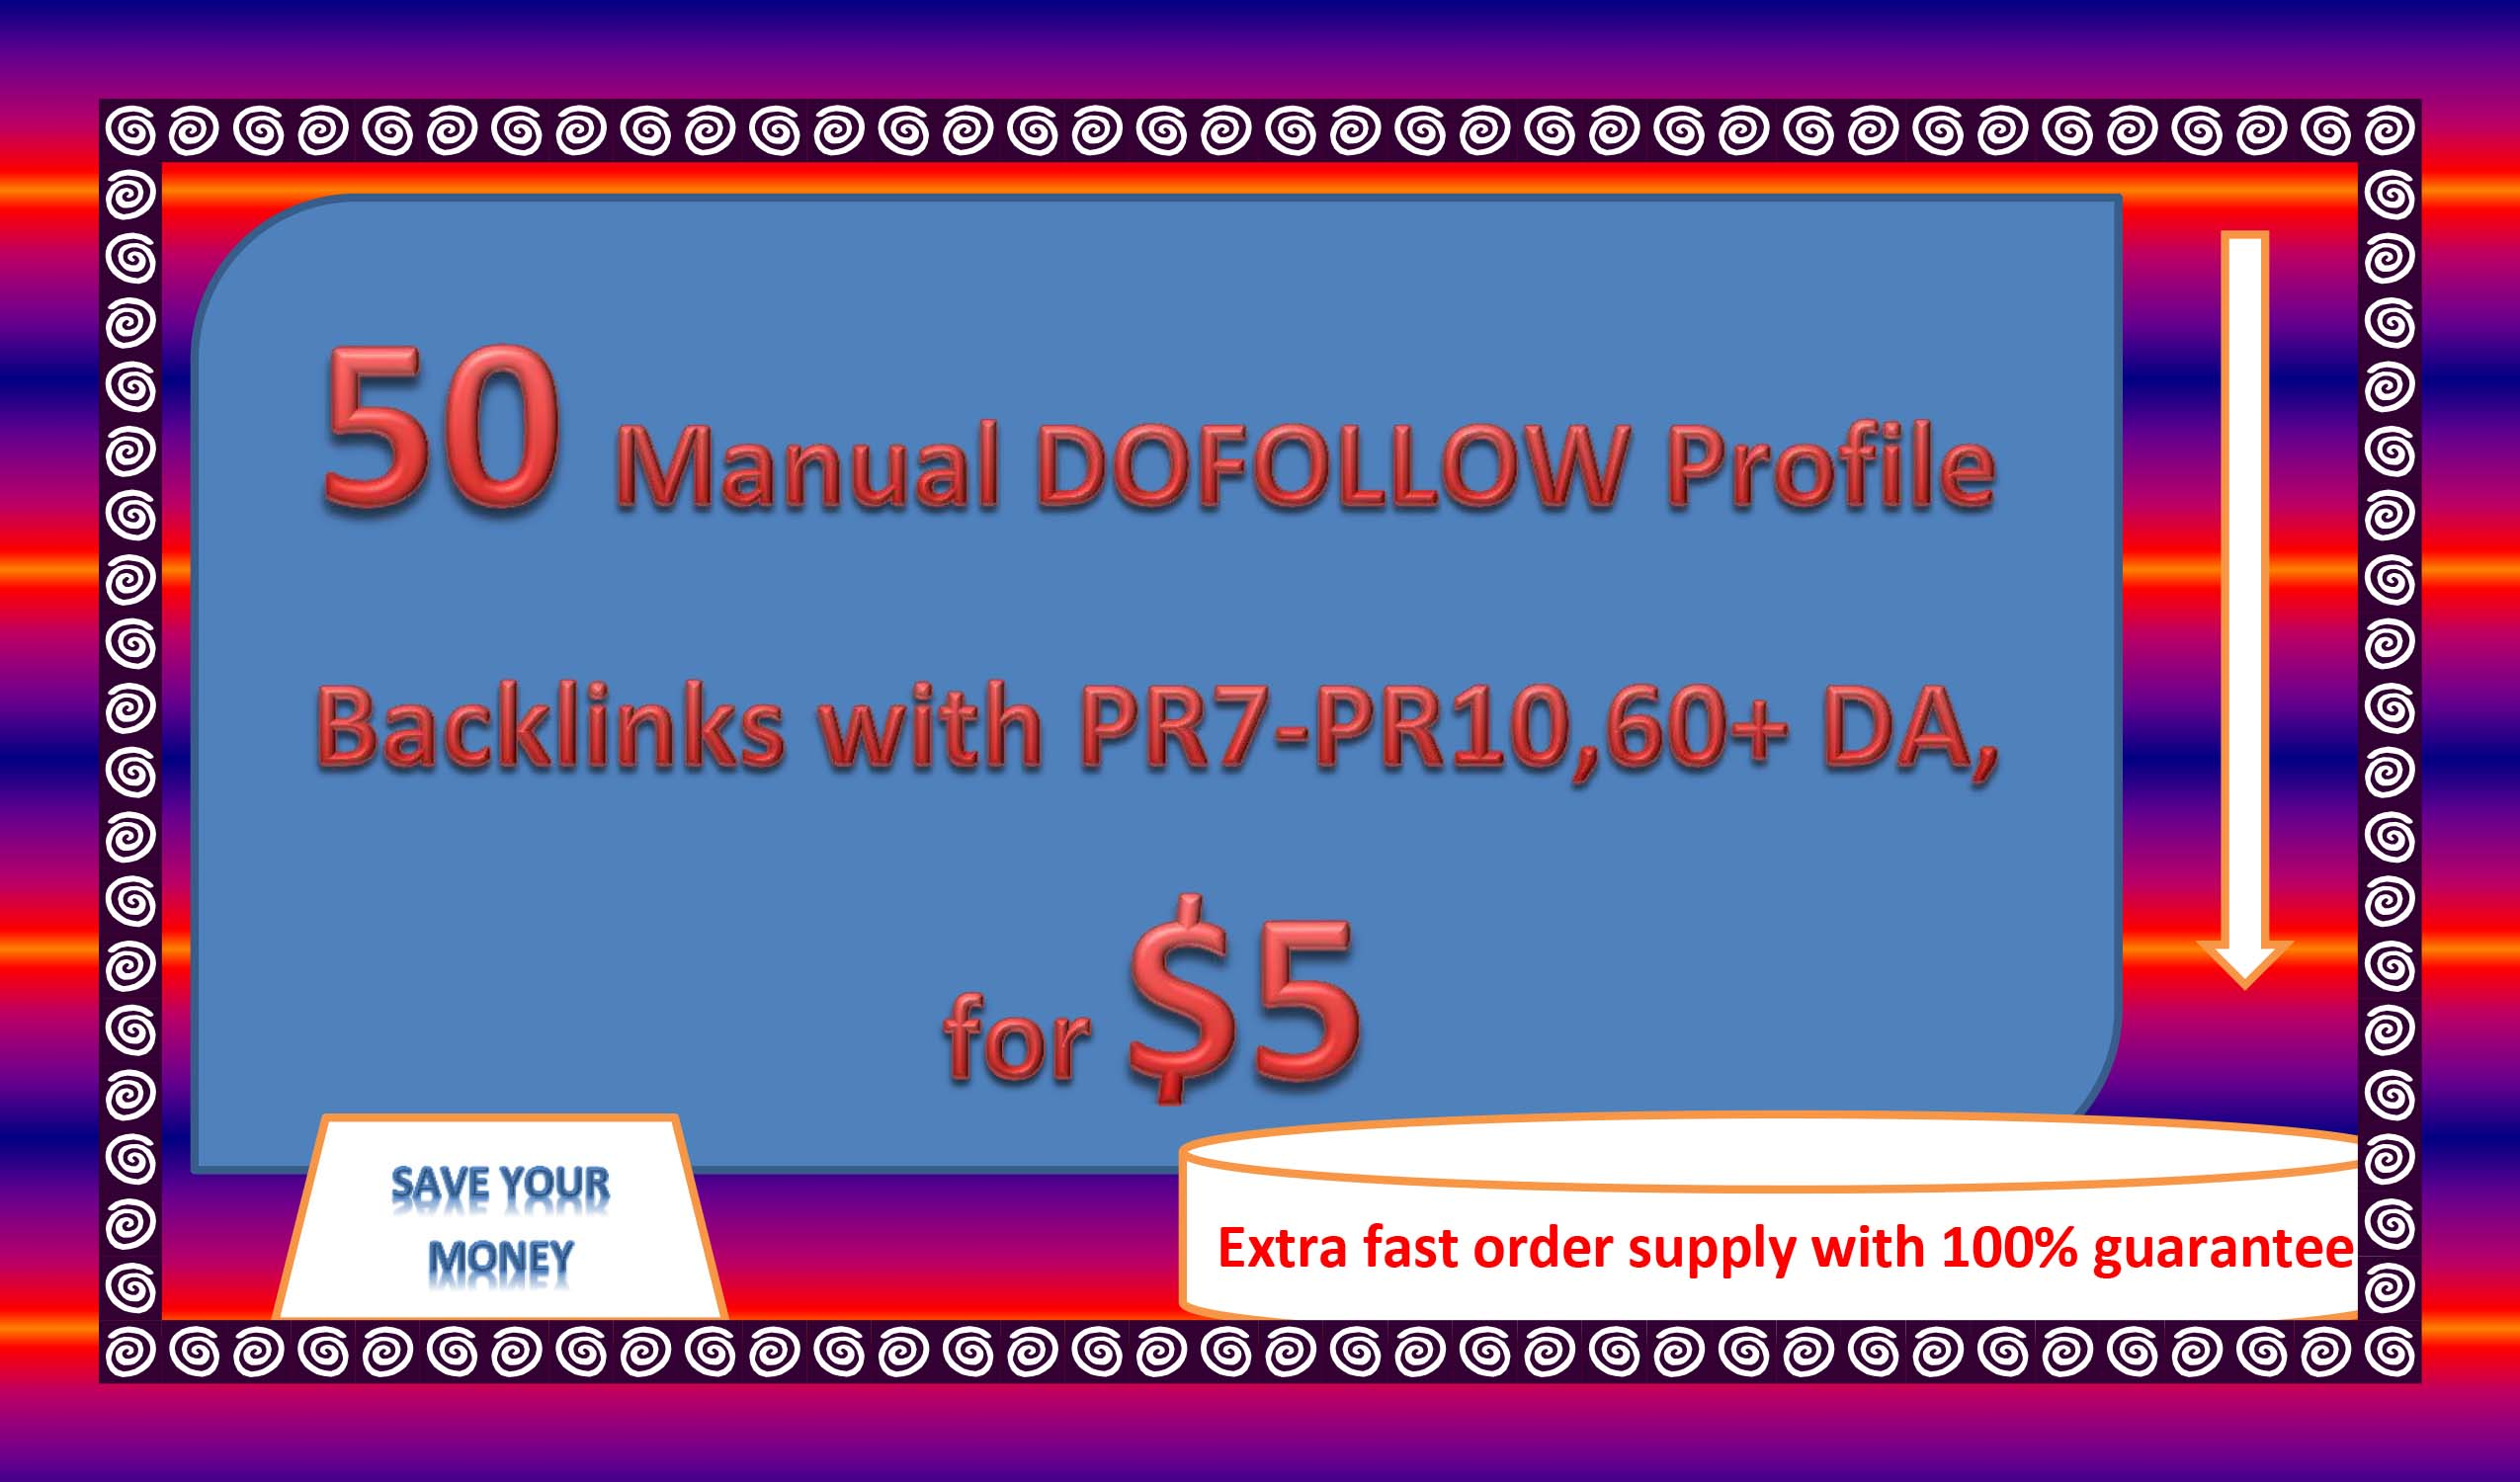 50 Manual DOFOLLOW Profile Backlinks with PR7-PR10, 60+ DA